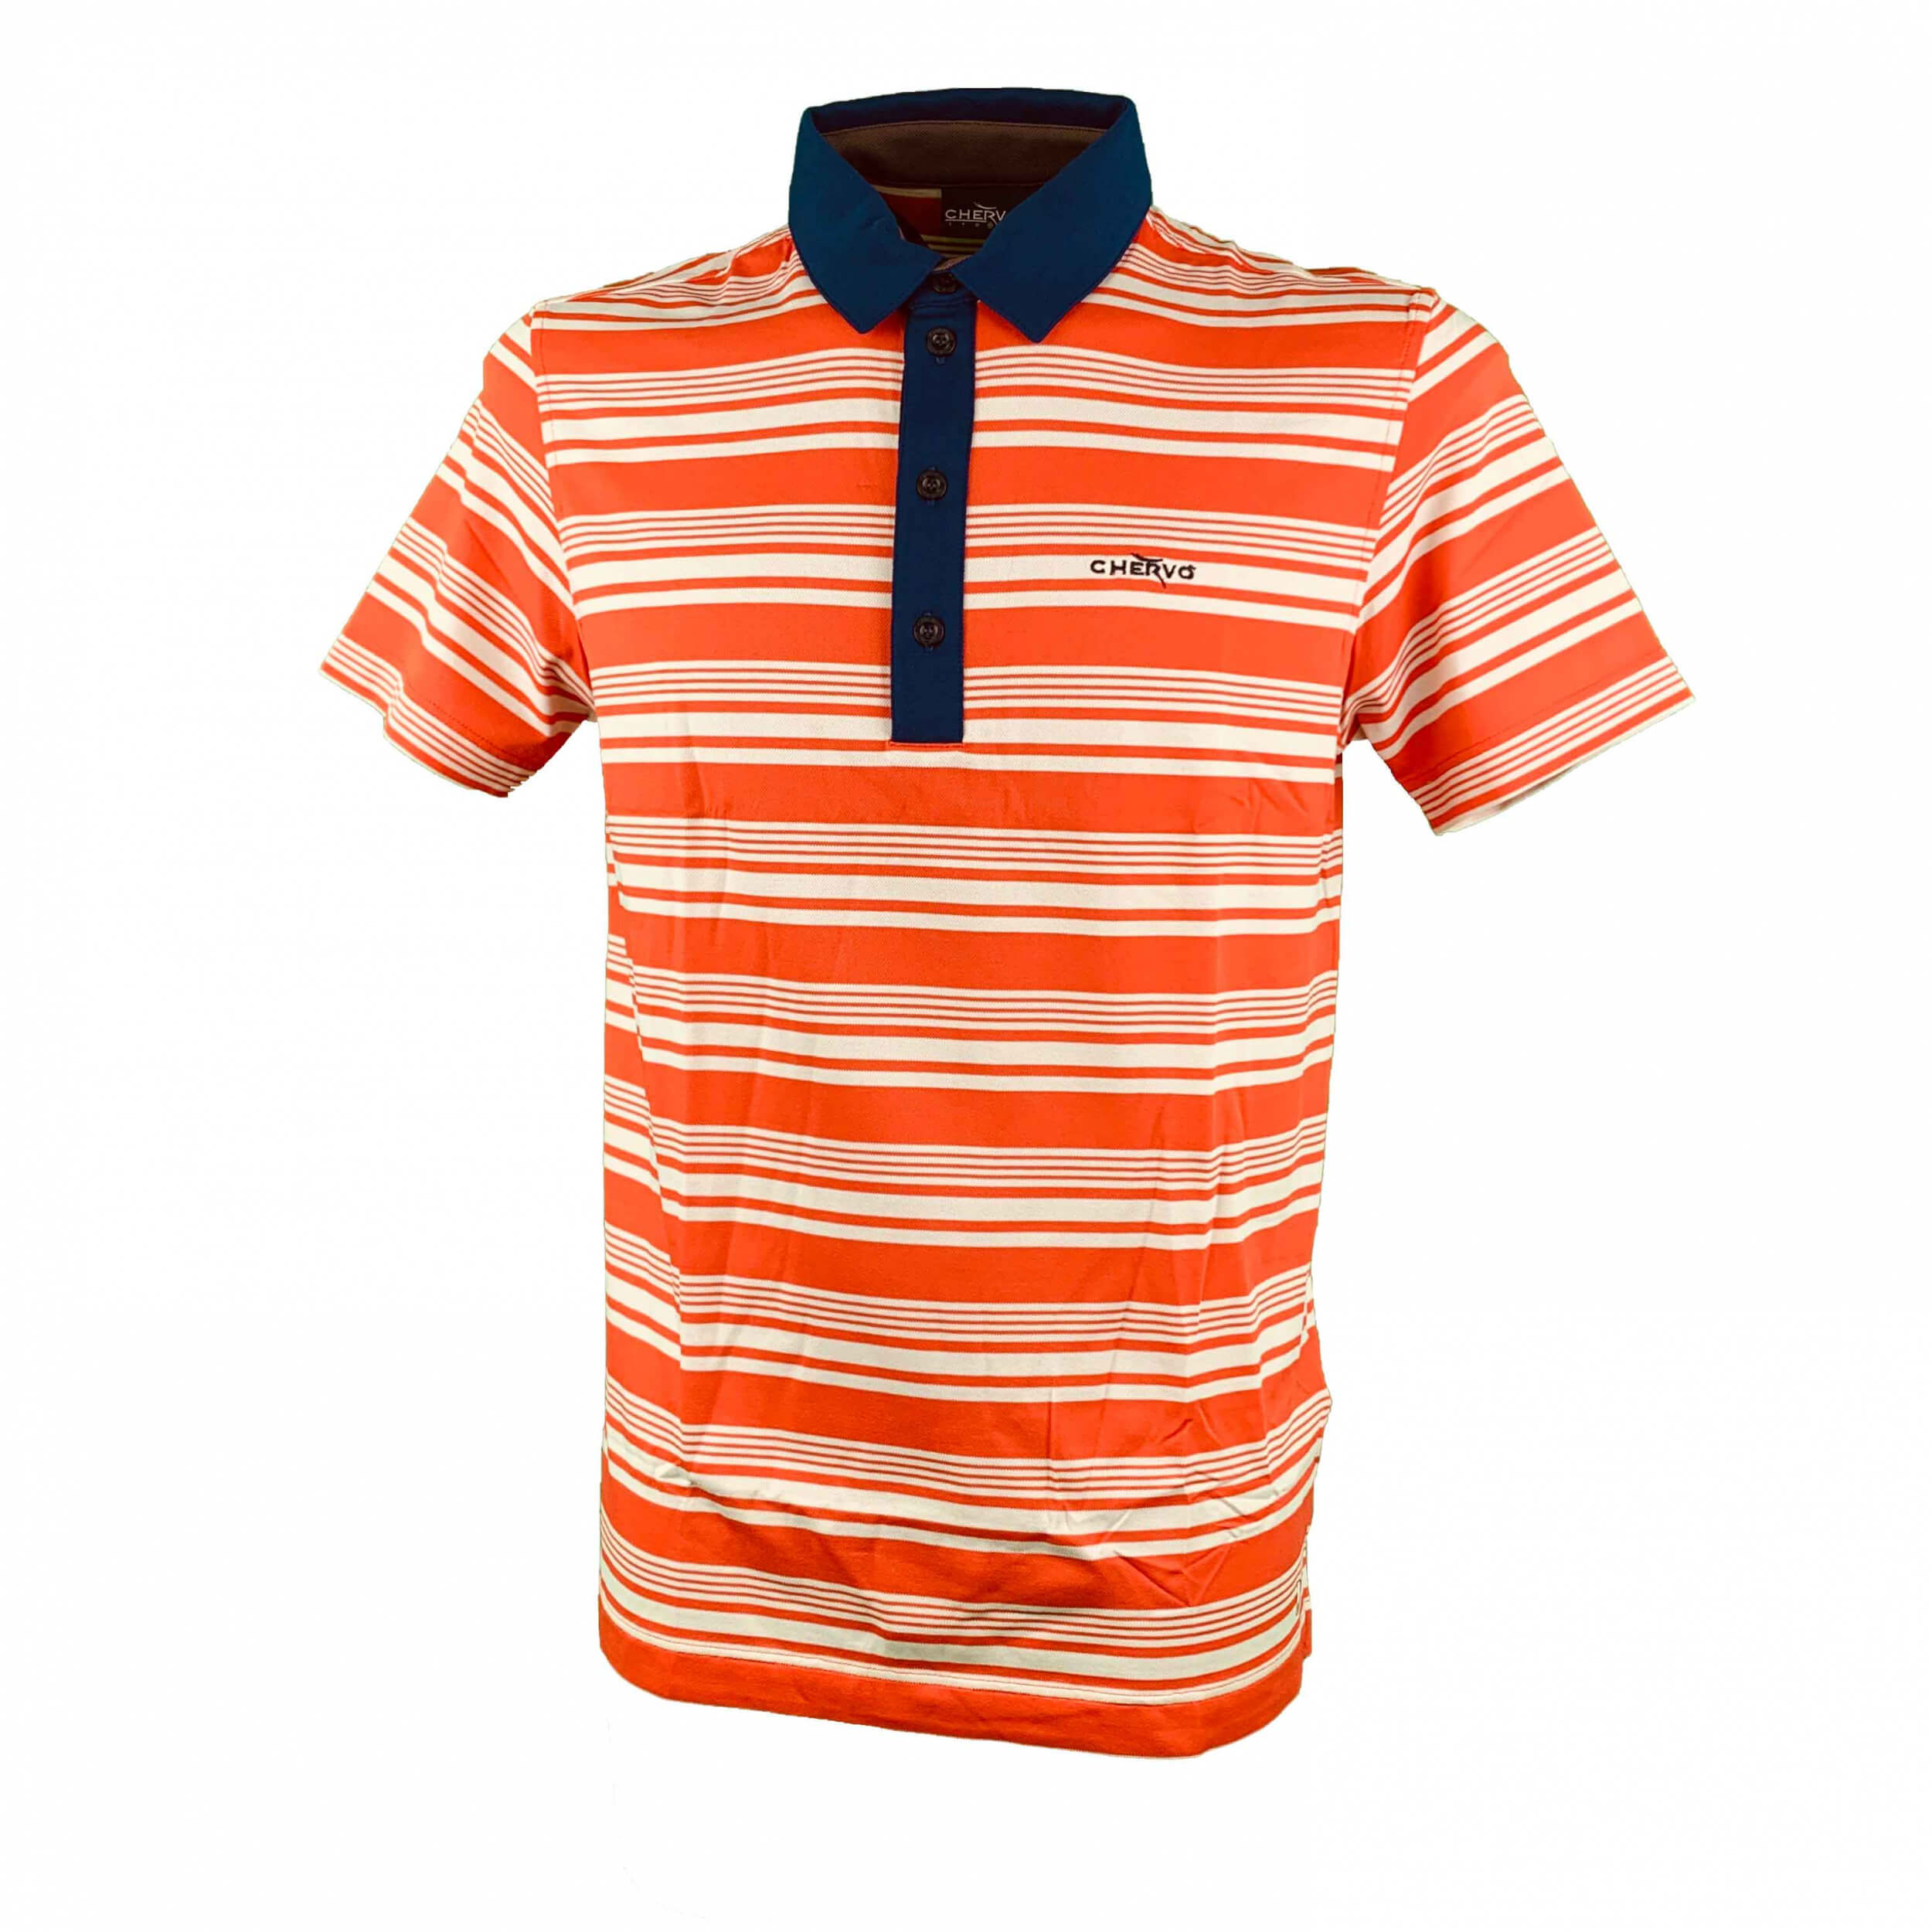 Chervo Herren Polo Amblar DRY MATIC orange gestreift 81C